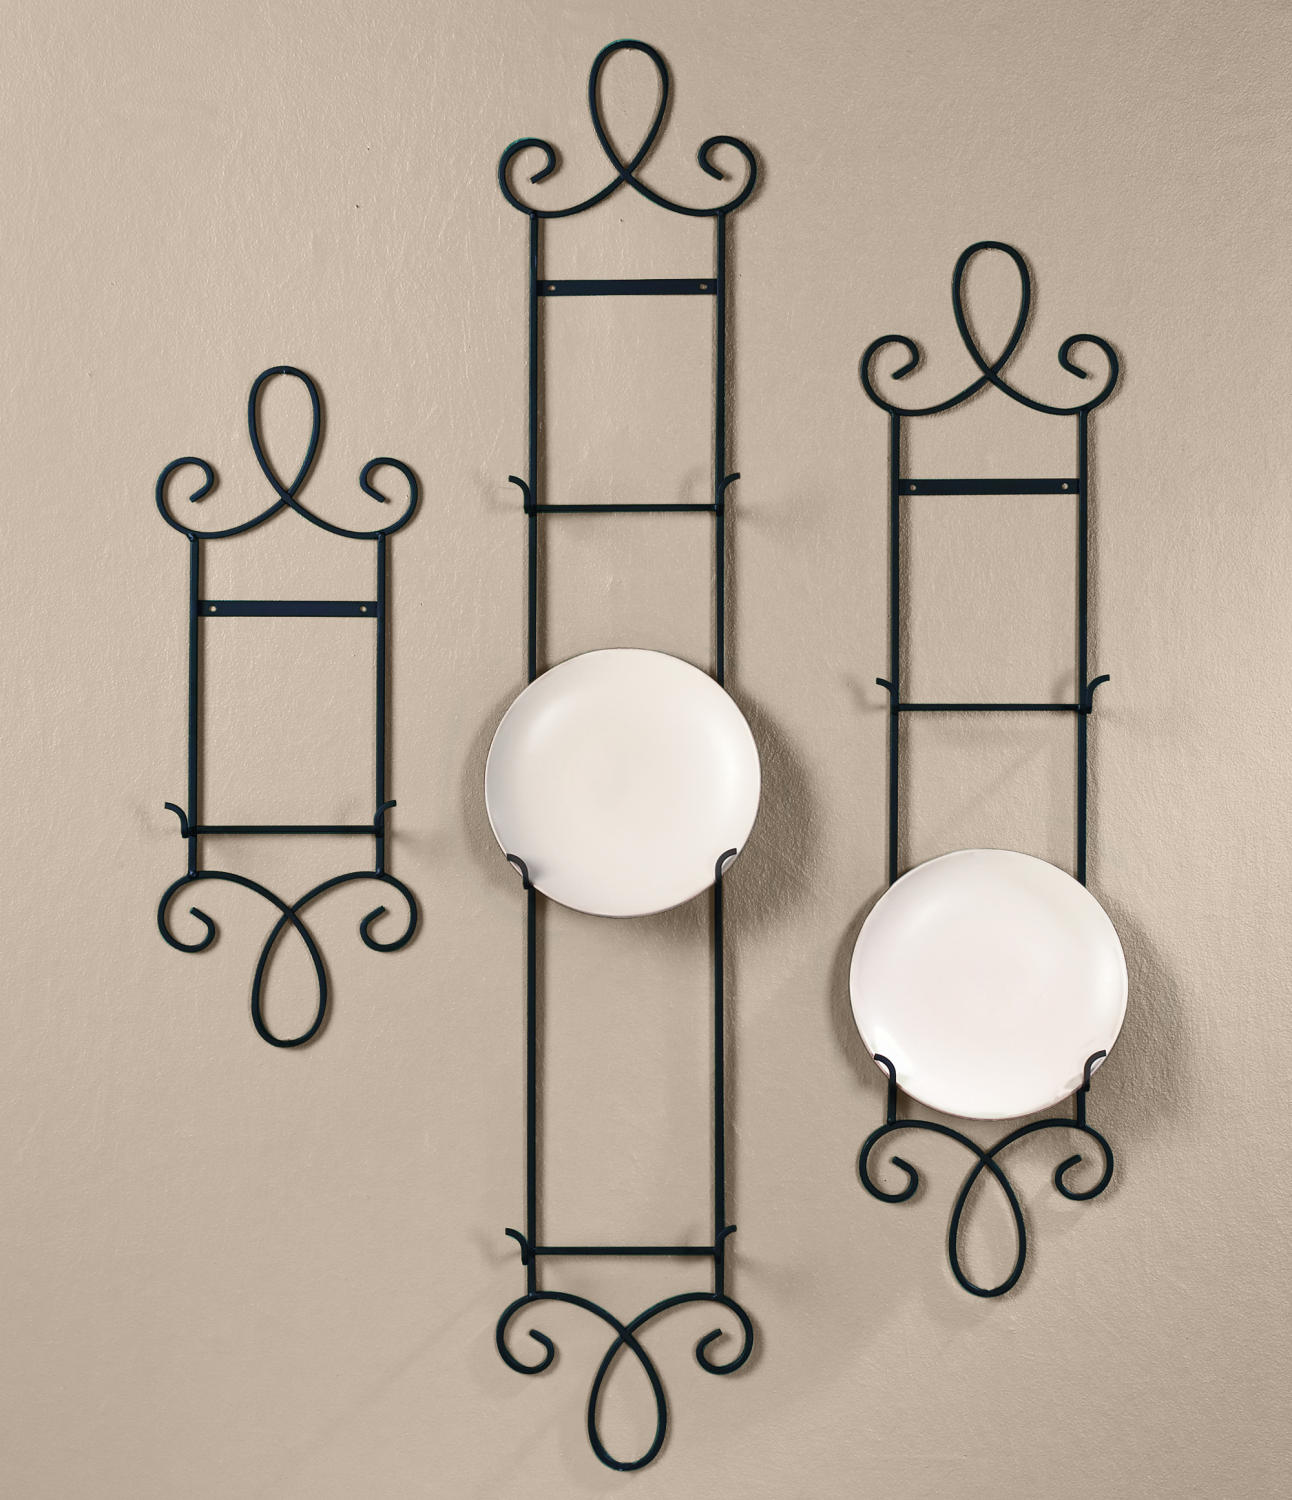 Inspiring Wall Mounted Decorative Plate Rack Pictures - Best Image ...